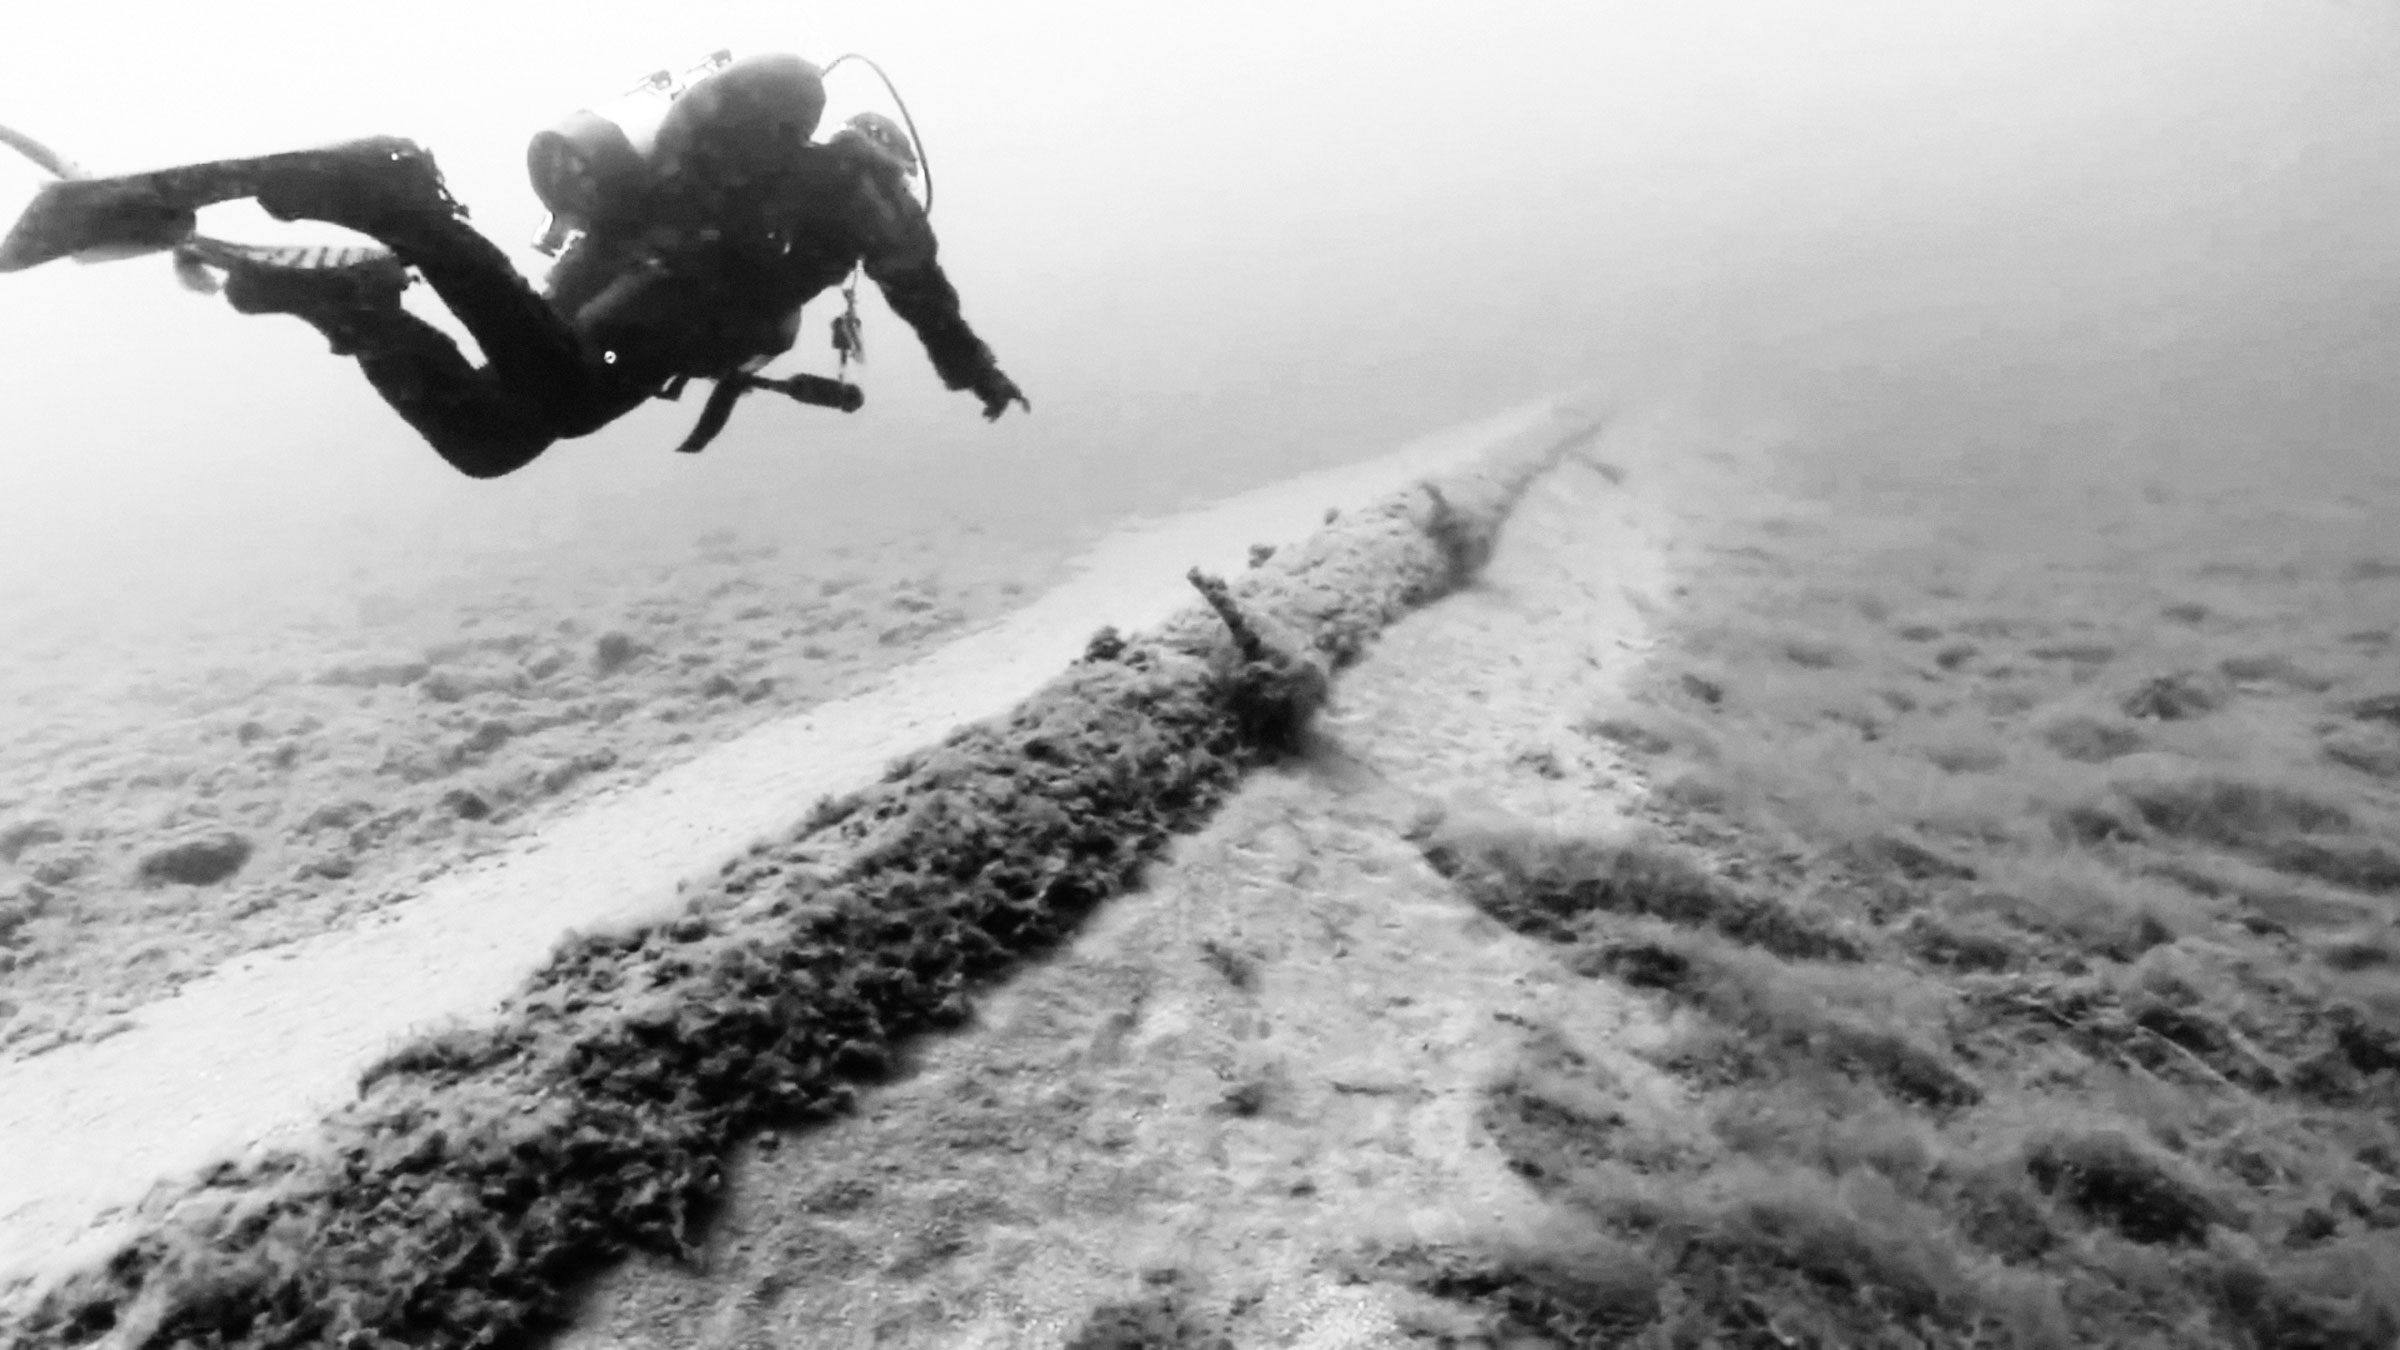 A diver with the National Wildlife Federation examines Line 5, Enbridge's oil and gas pipeline running along the bottomlands of the Straits of Mackinac. Screenshot: National Wildlife Federation